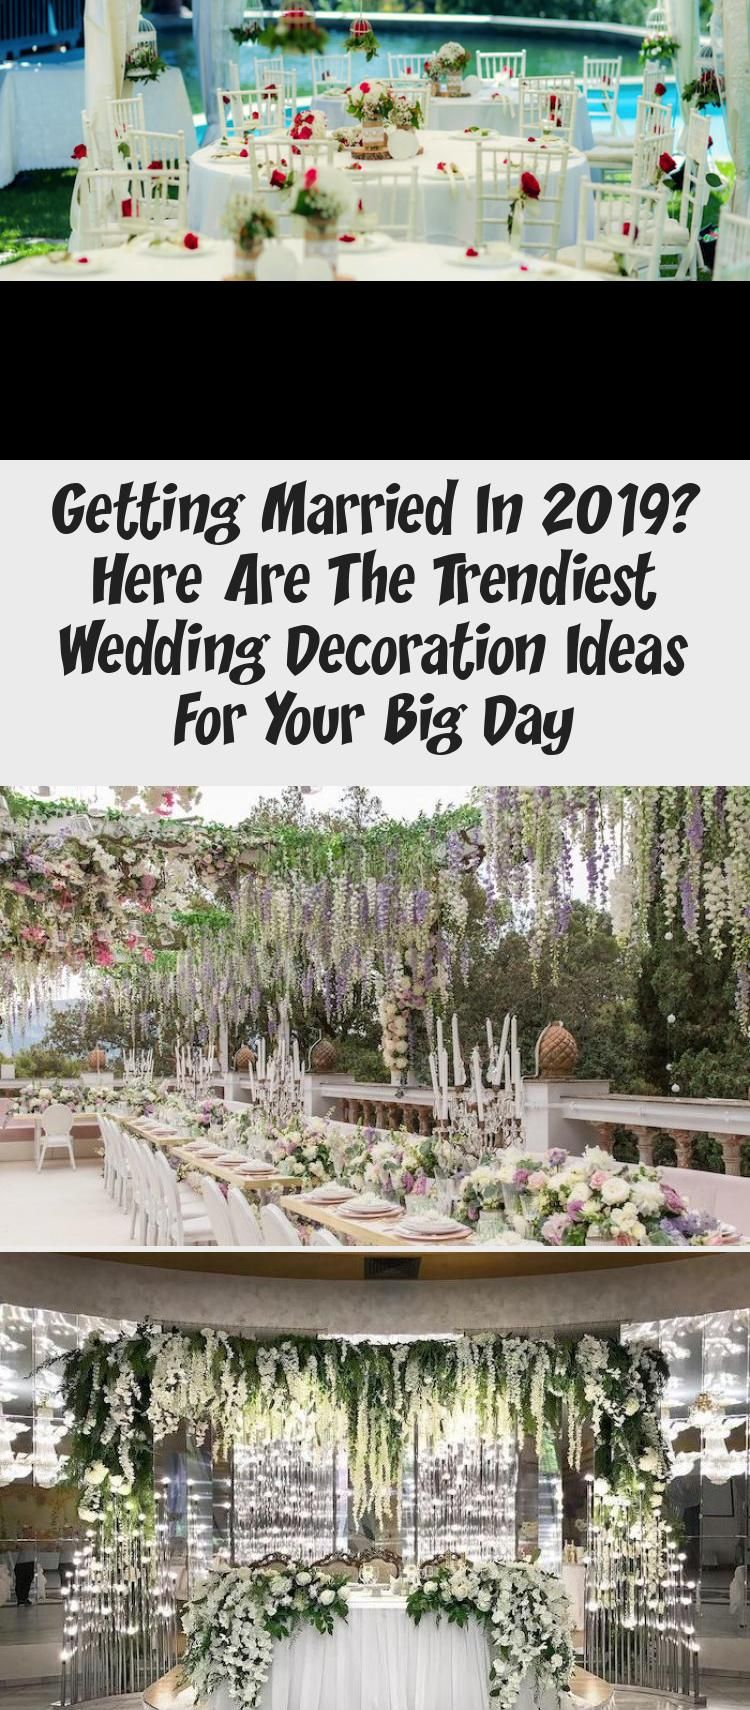 Photo of Getting Married In 2019? Here Are The Trendiest Wedding Decoration Ideas For Your Big Day – Wedding